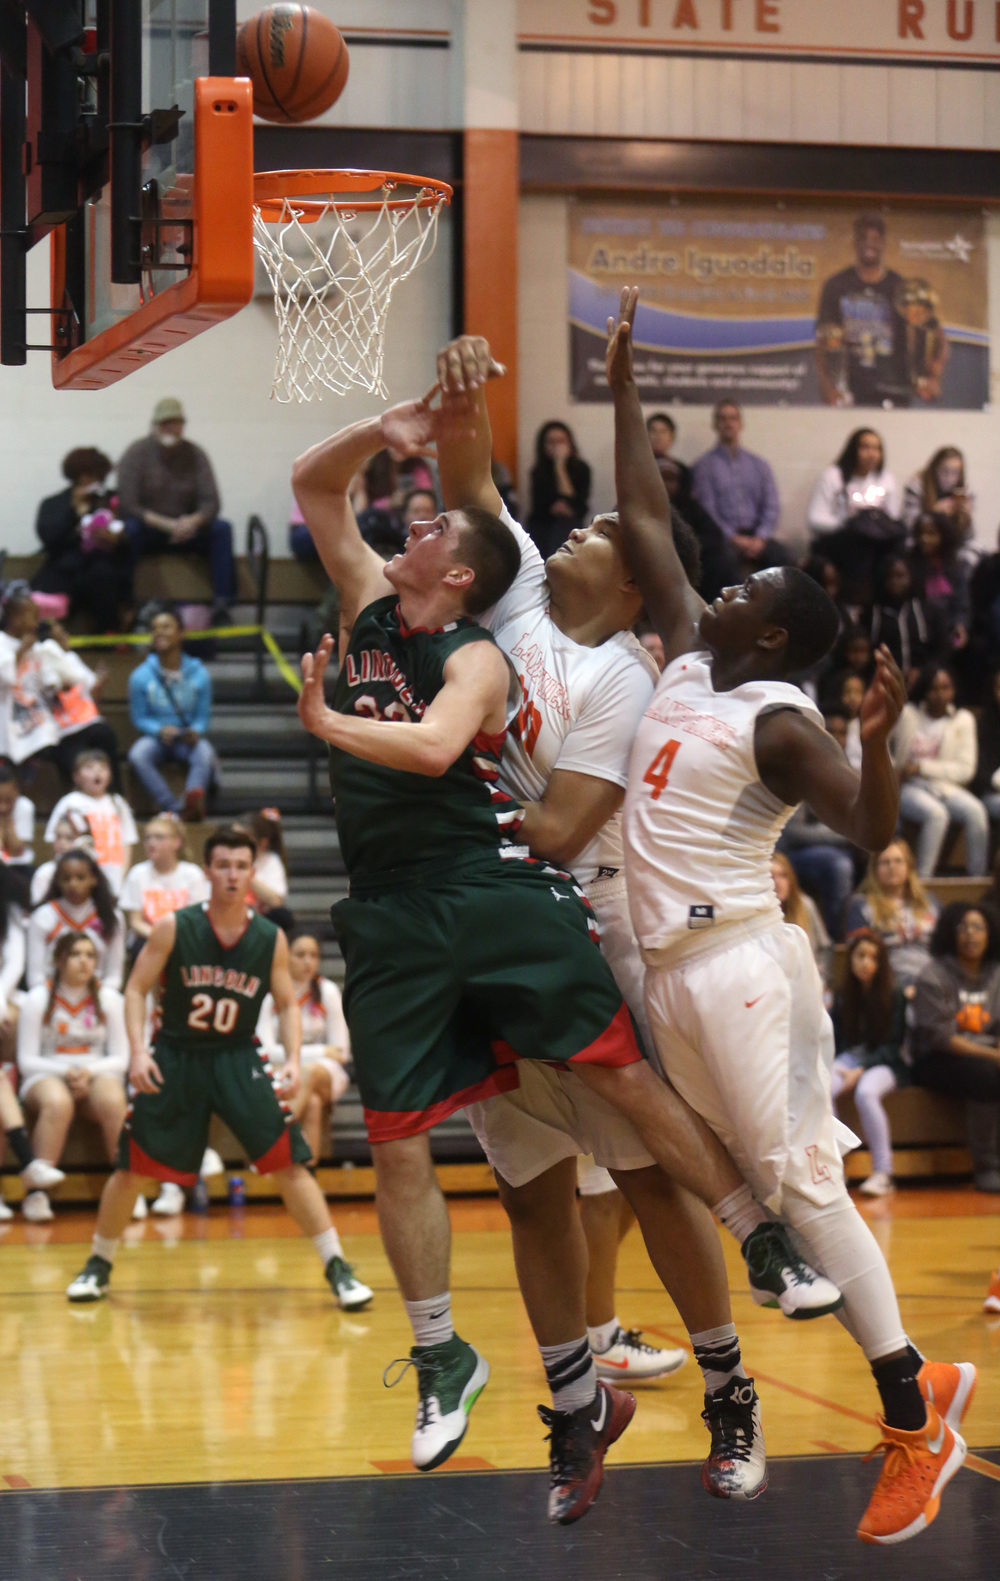 A rebound gets the attention of Lincoln player Isaiah Bowers at left and Lanphier players William Boles at center and Corrington Jones. David Spencer/The State Journal Register